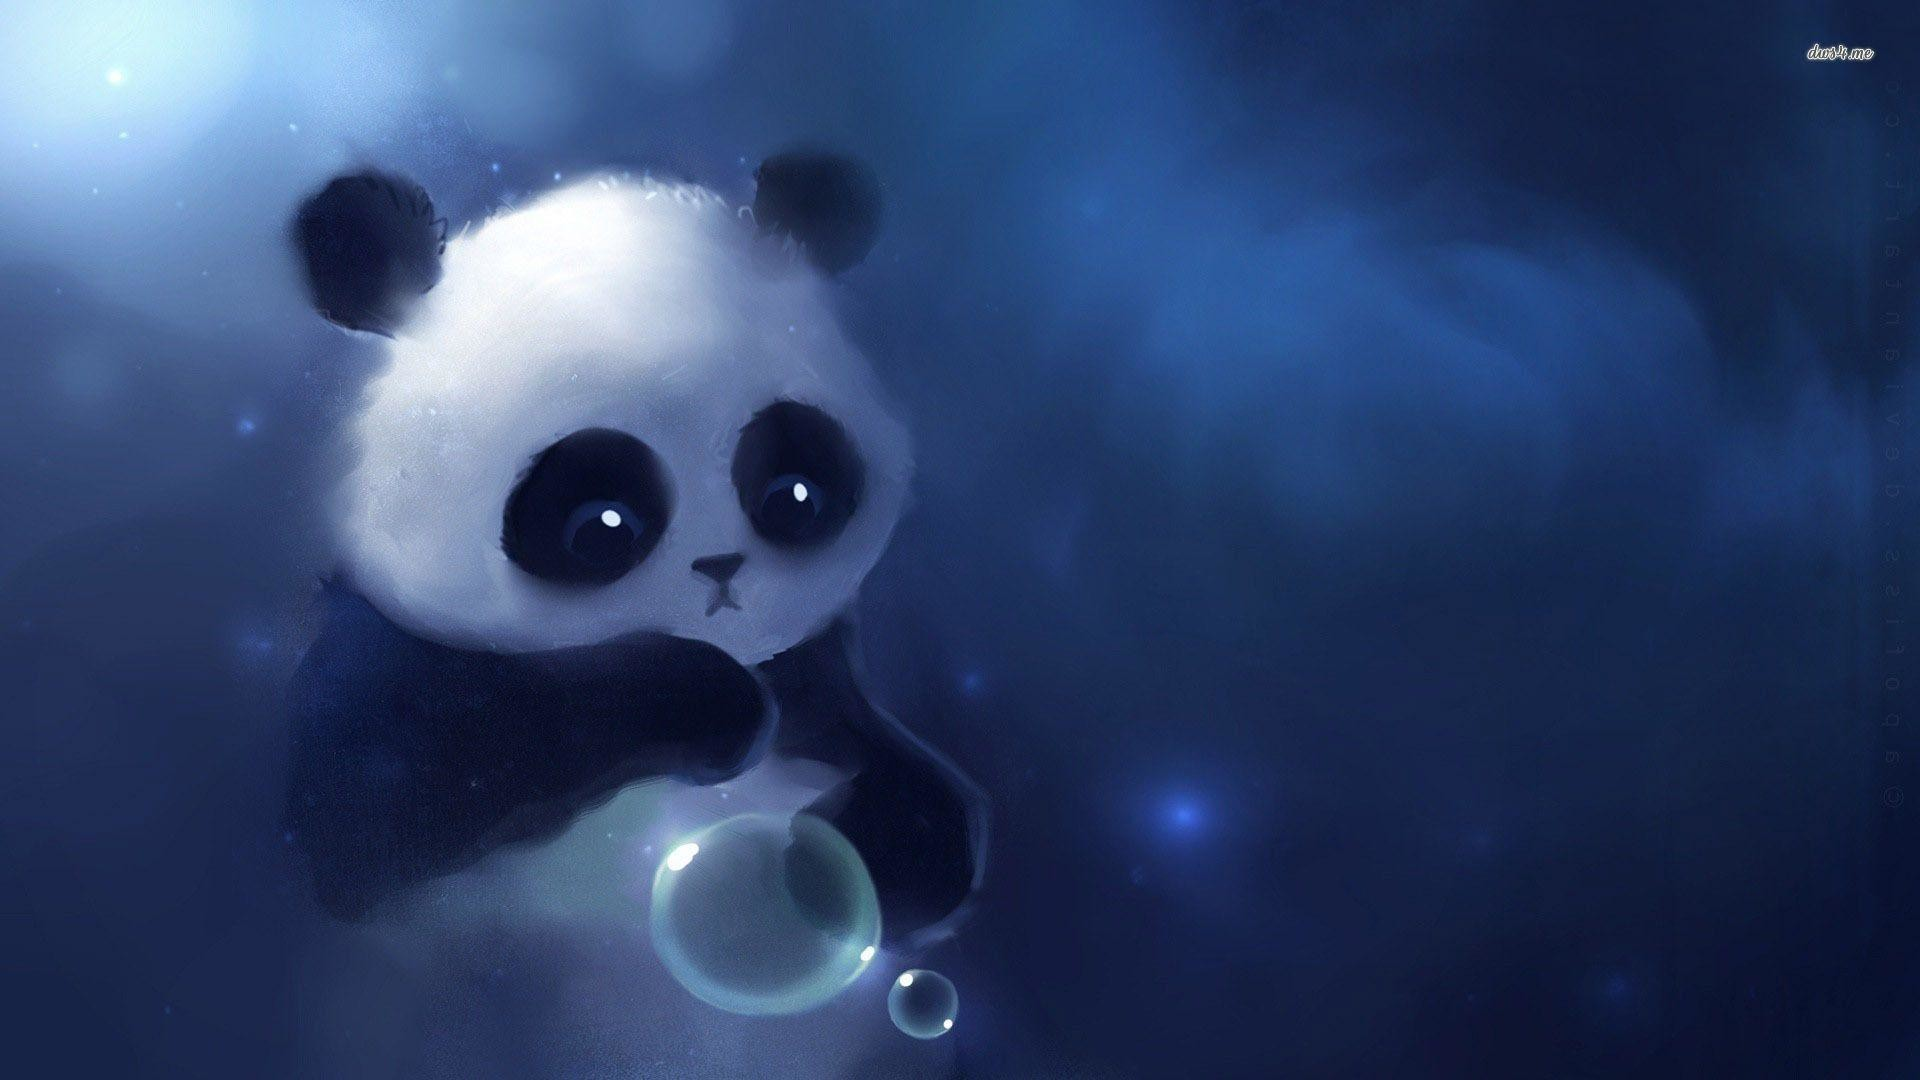 1920x1080 Cute Baby Panda Wallpapers